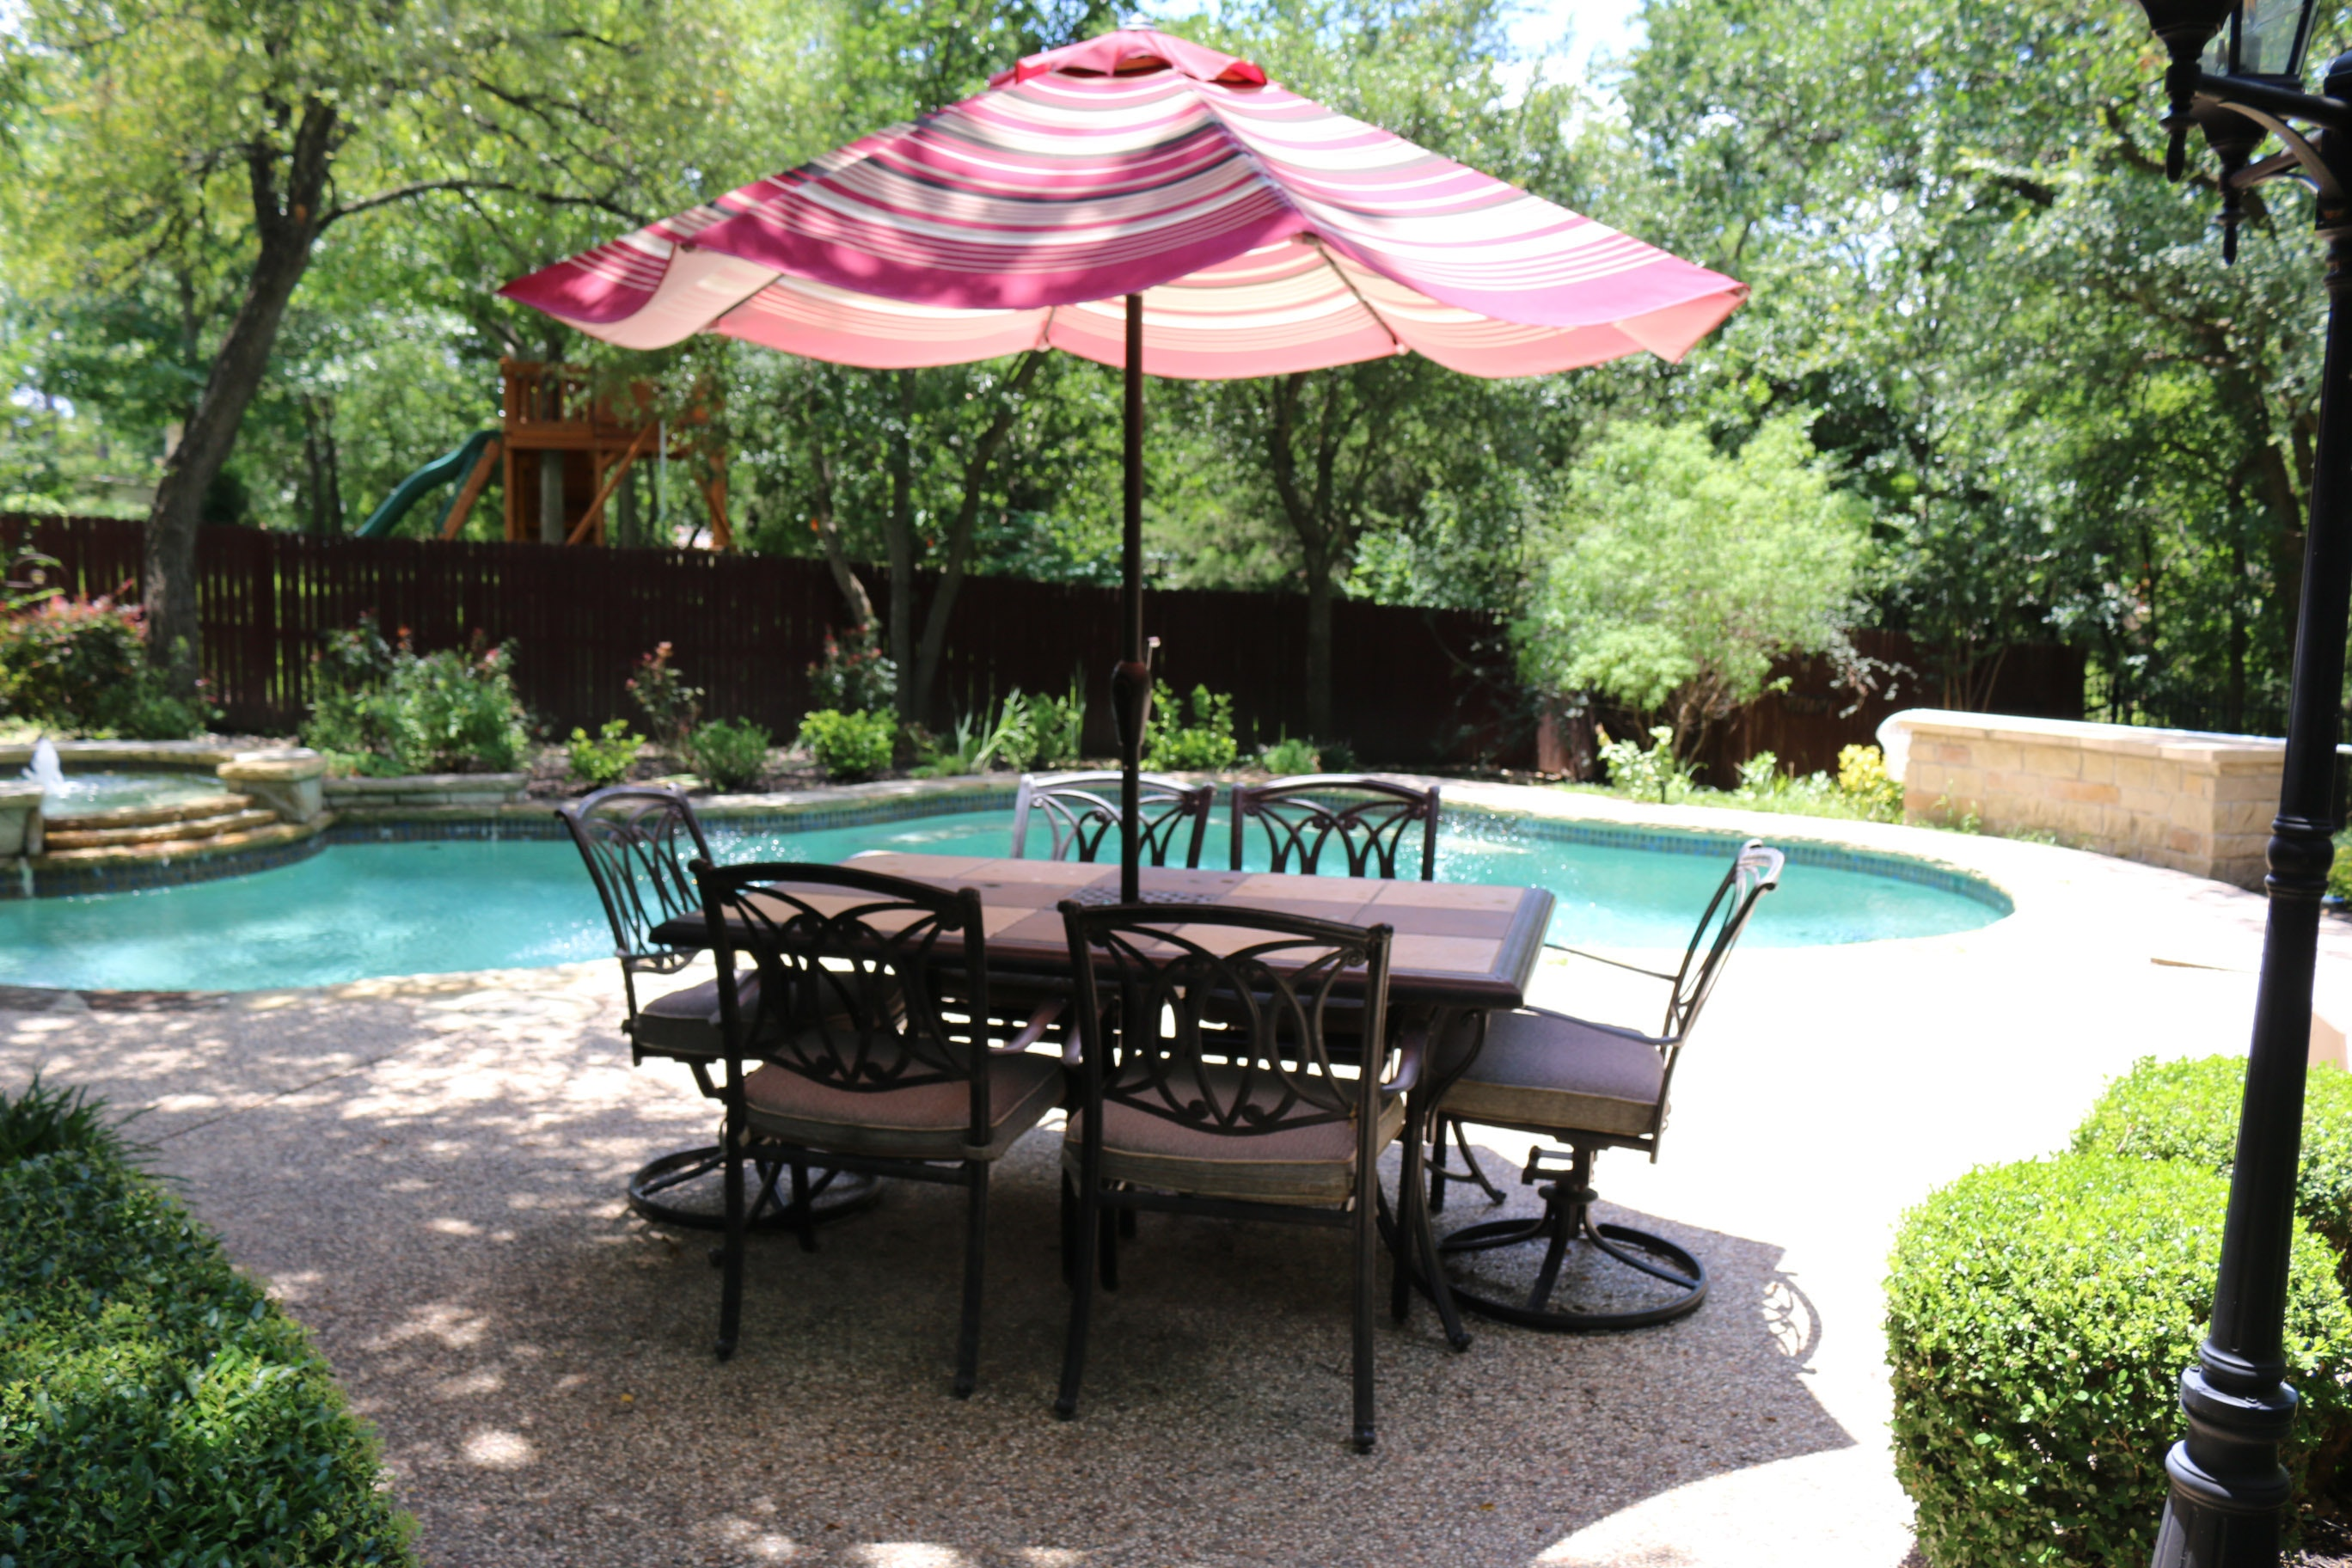 outdoor patio table with chairs and umbrella ebth rh ebth com Patio Table with Chairs Drawing Patio Table and Chair Sets